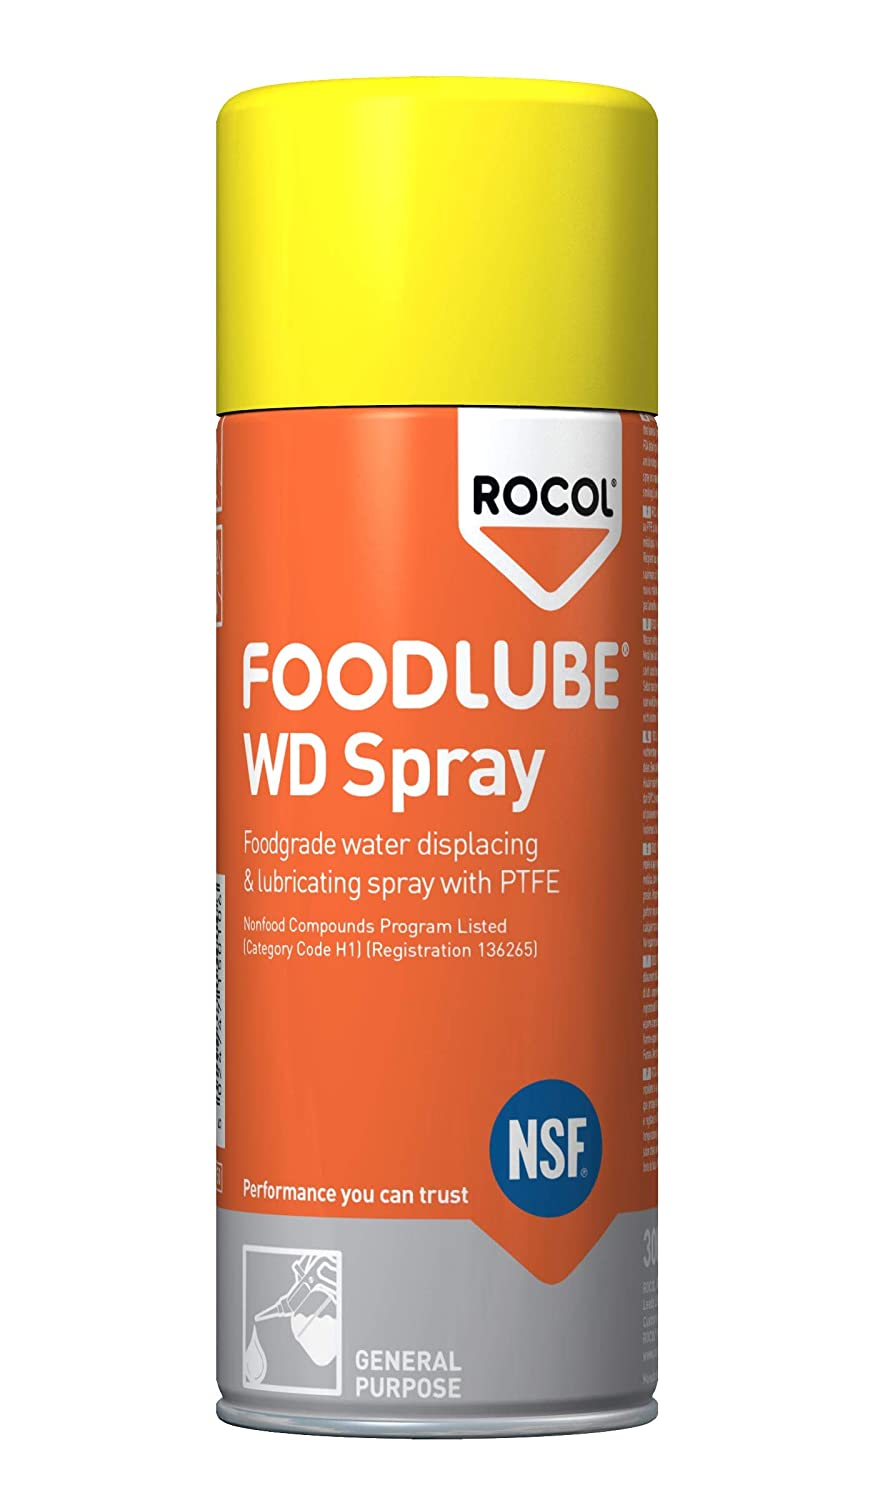 FOODLUBE WD SPRAY - 300 ml